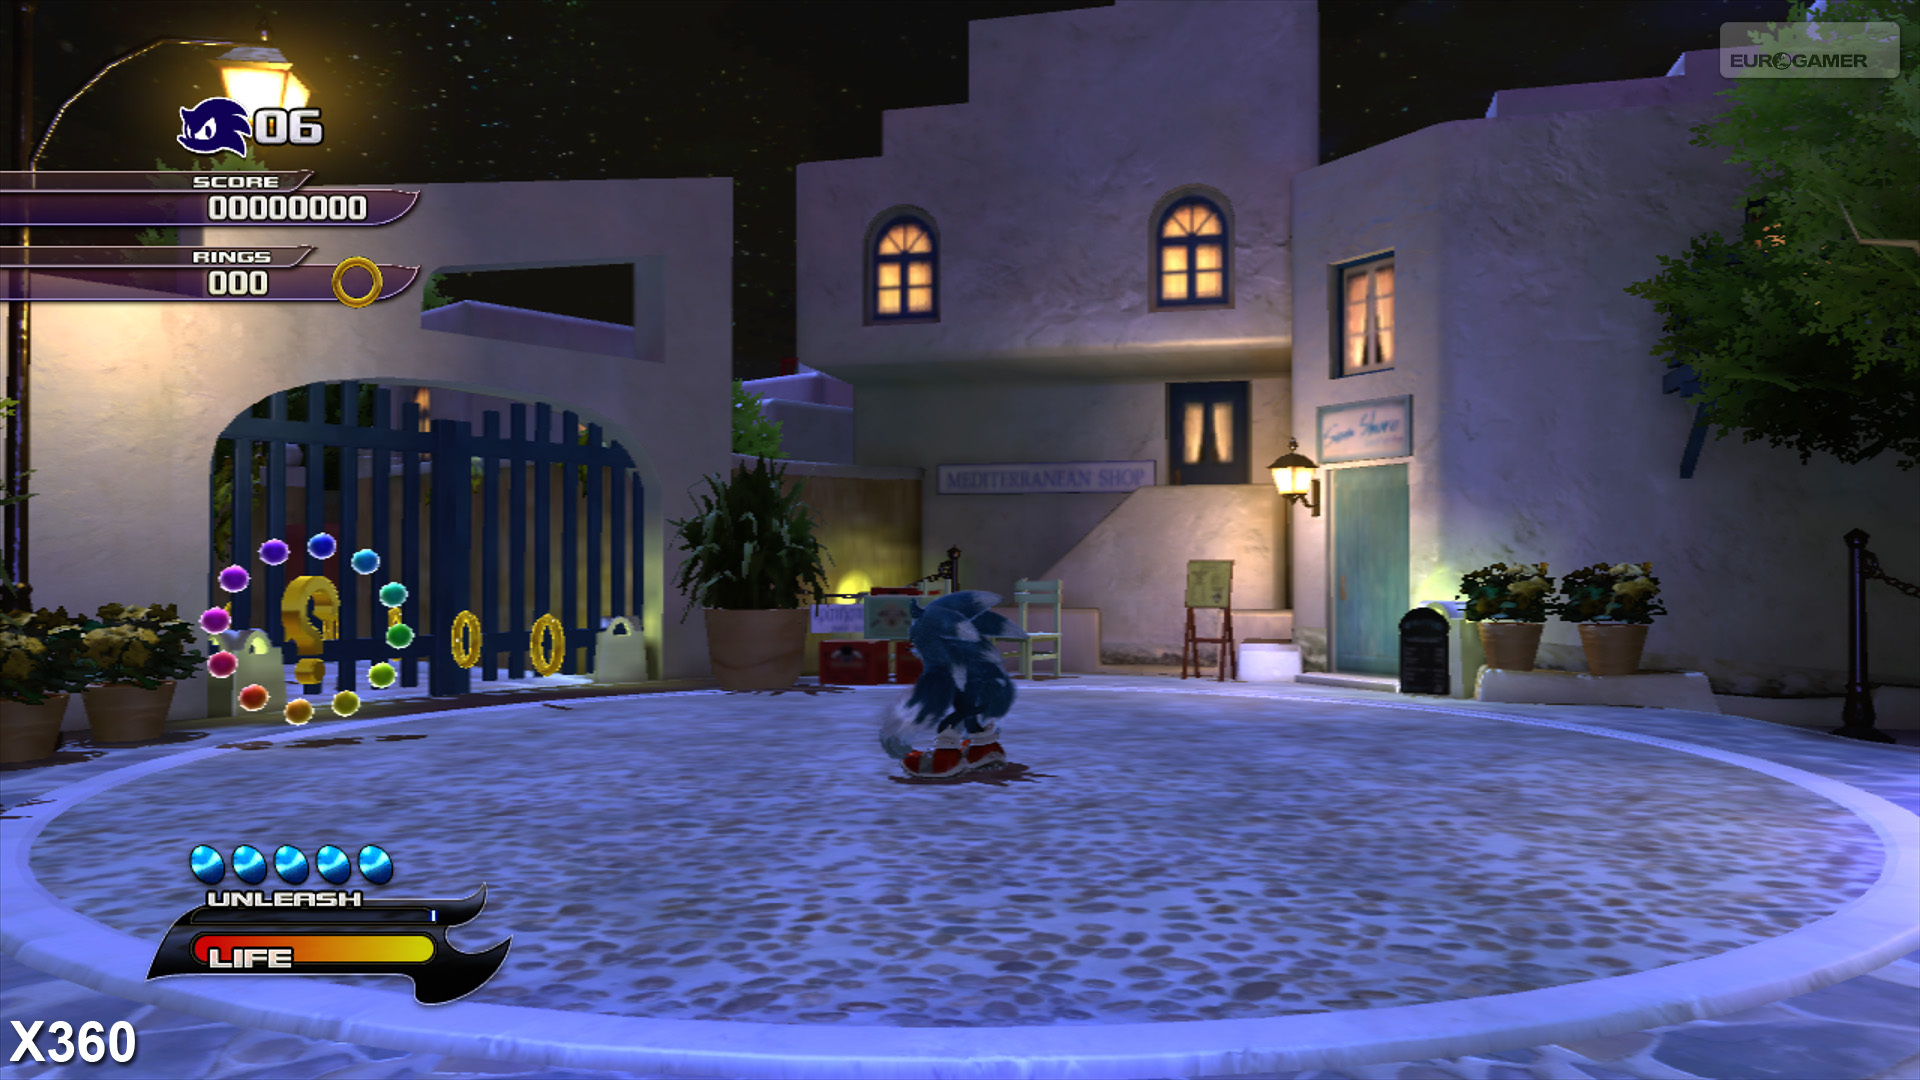 Sonic Unleashed video game wallpapers • Wallpaper 403 of 413